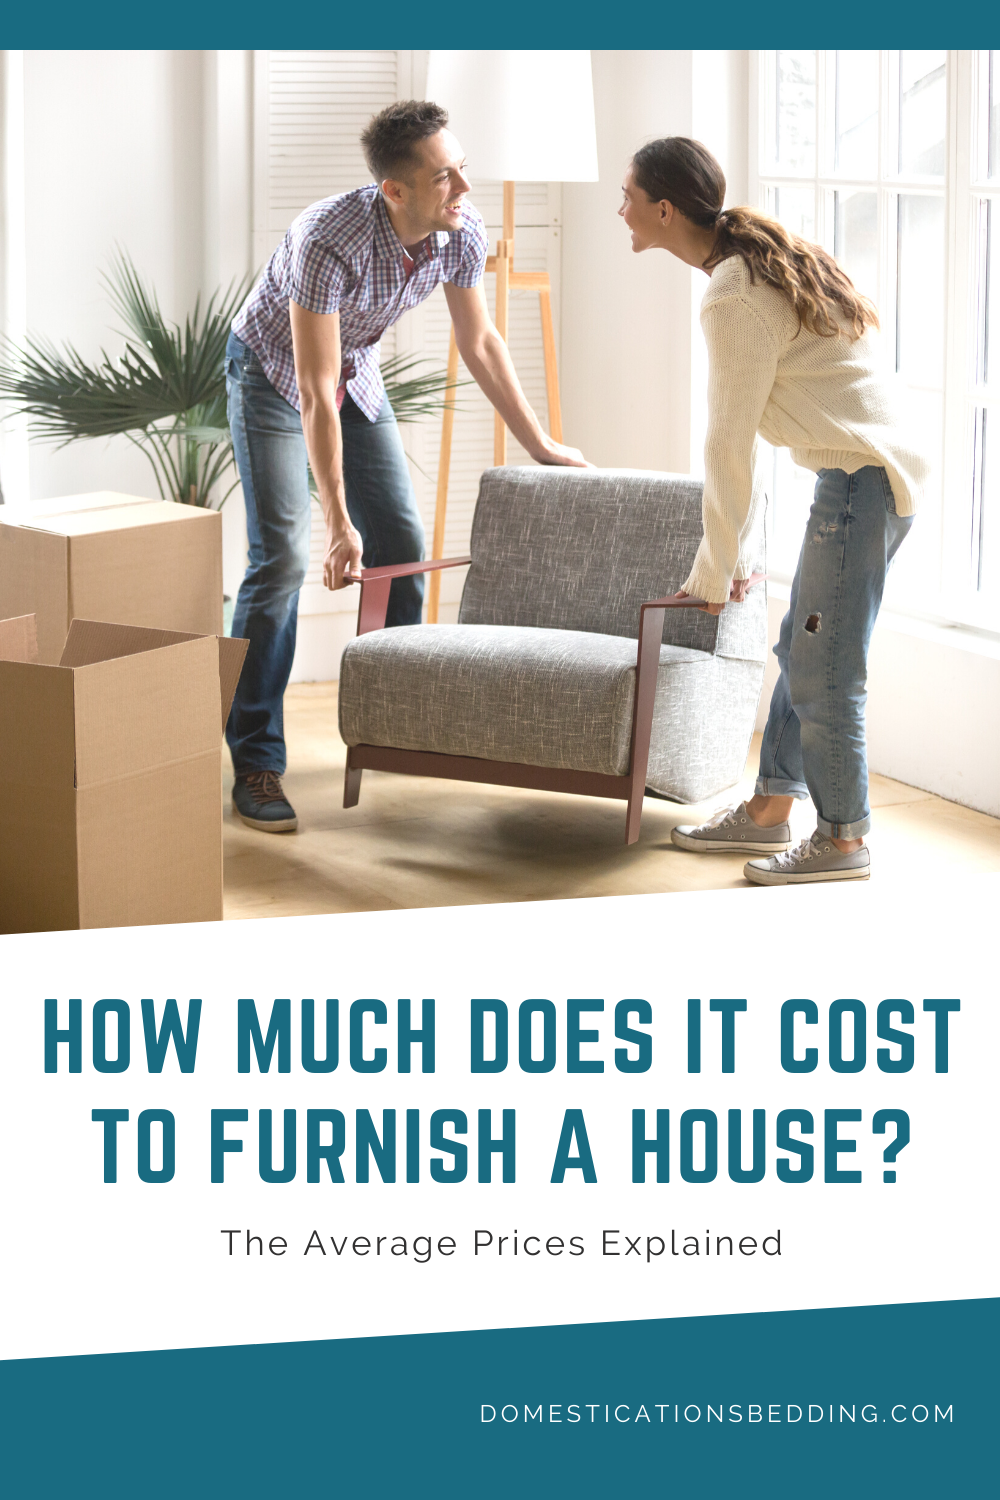 How Much Does it Cost to Furnish a House